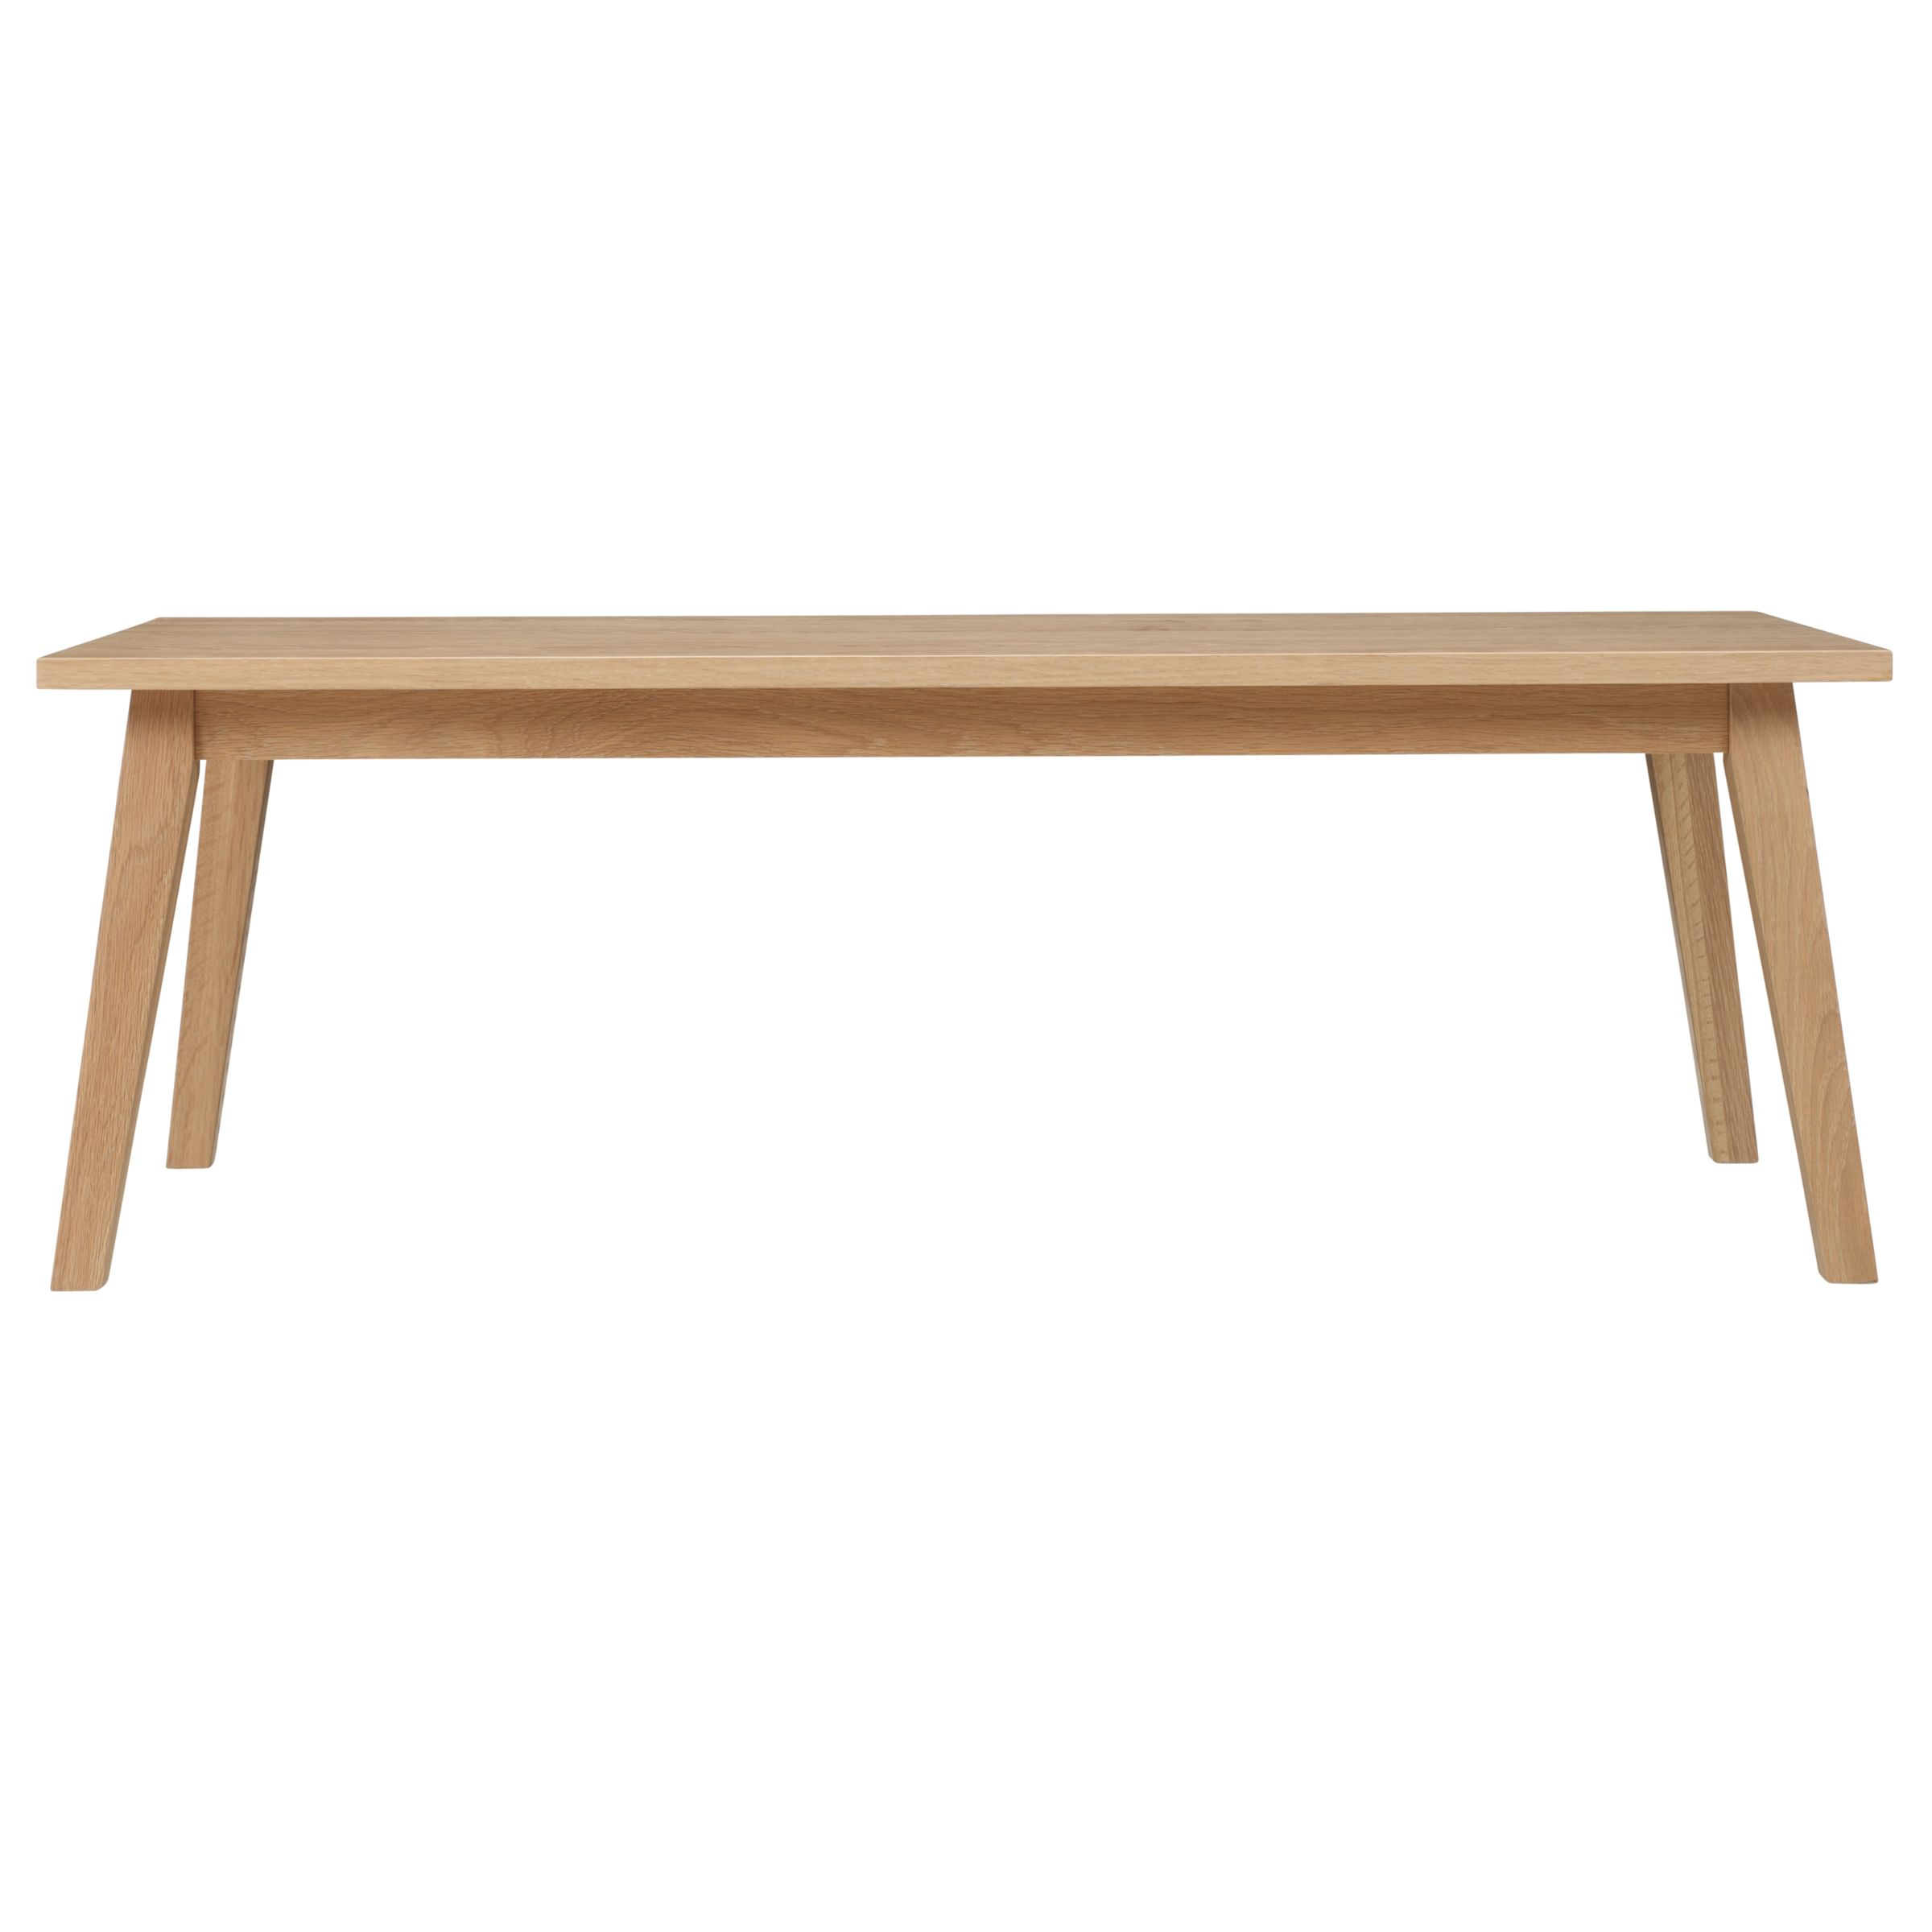 John Lewis Coffee Tables